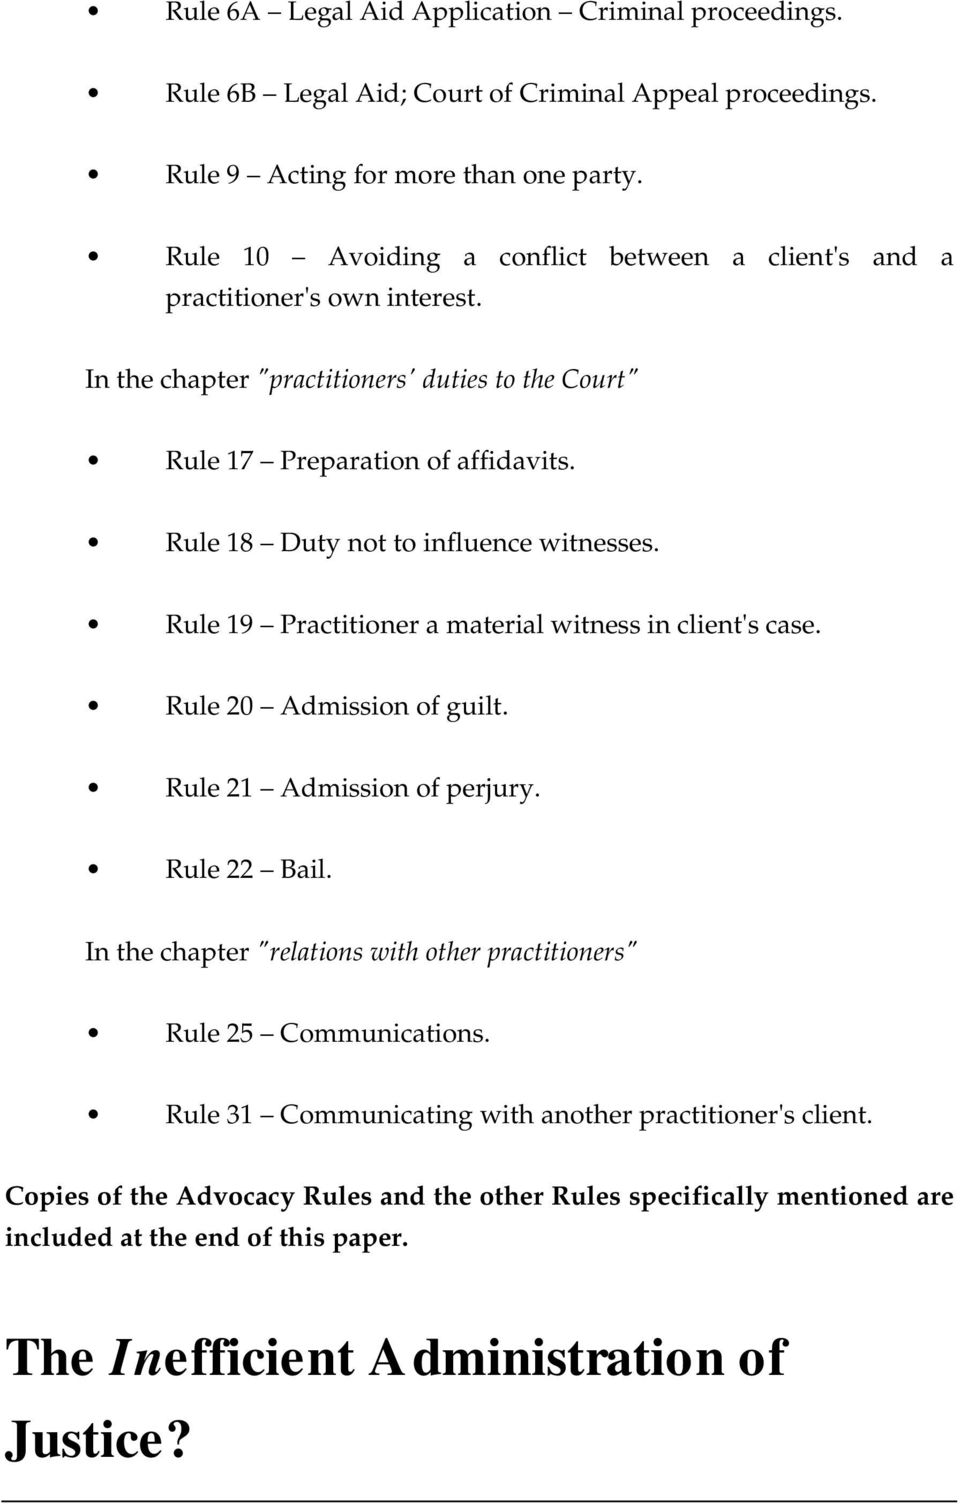 Rule 18 Duty not to influence witnesses. Rule 19 Practitioner a material witness in client's case. Rule 20 Admission of guilt. Rule 21 Admission of perjury. Rule 22 Bail.